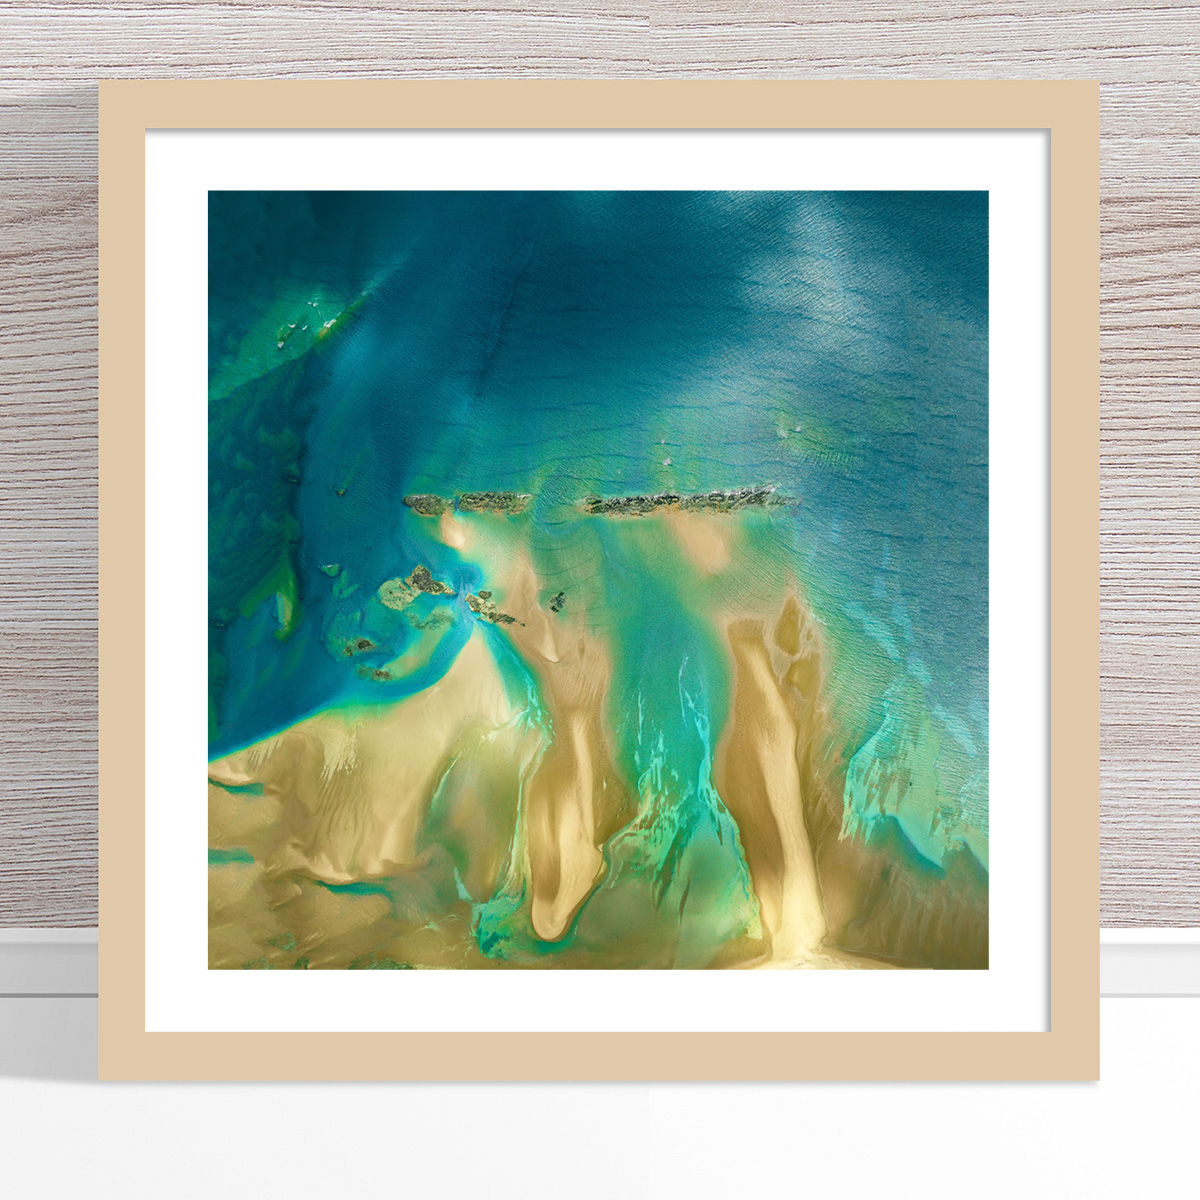 Chris Saunders - 'Aerial Coast 011' Light Frame